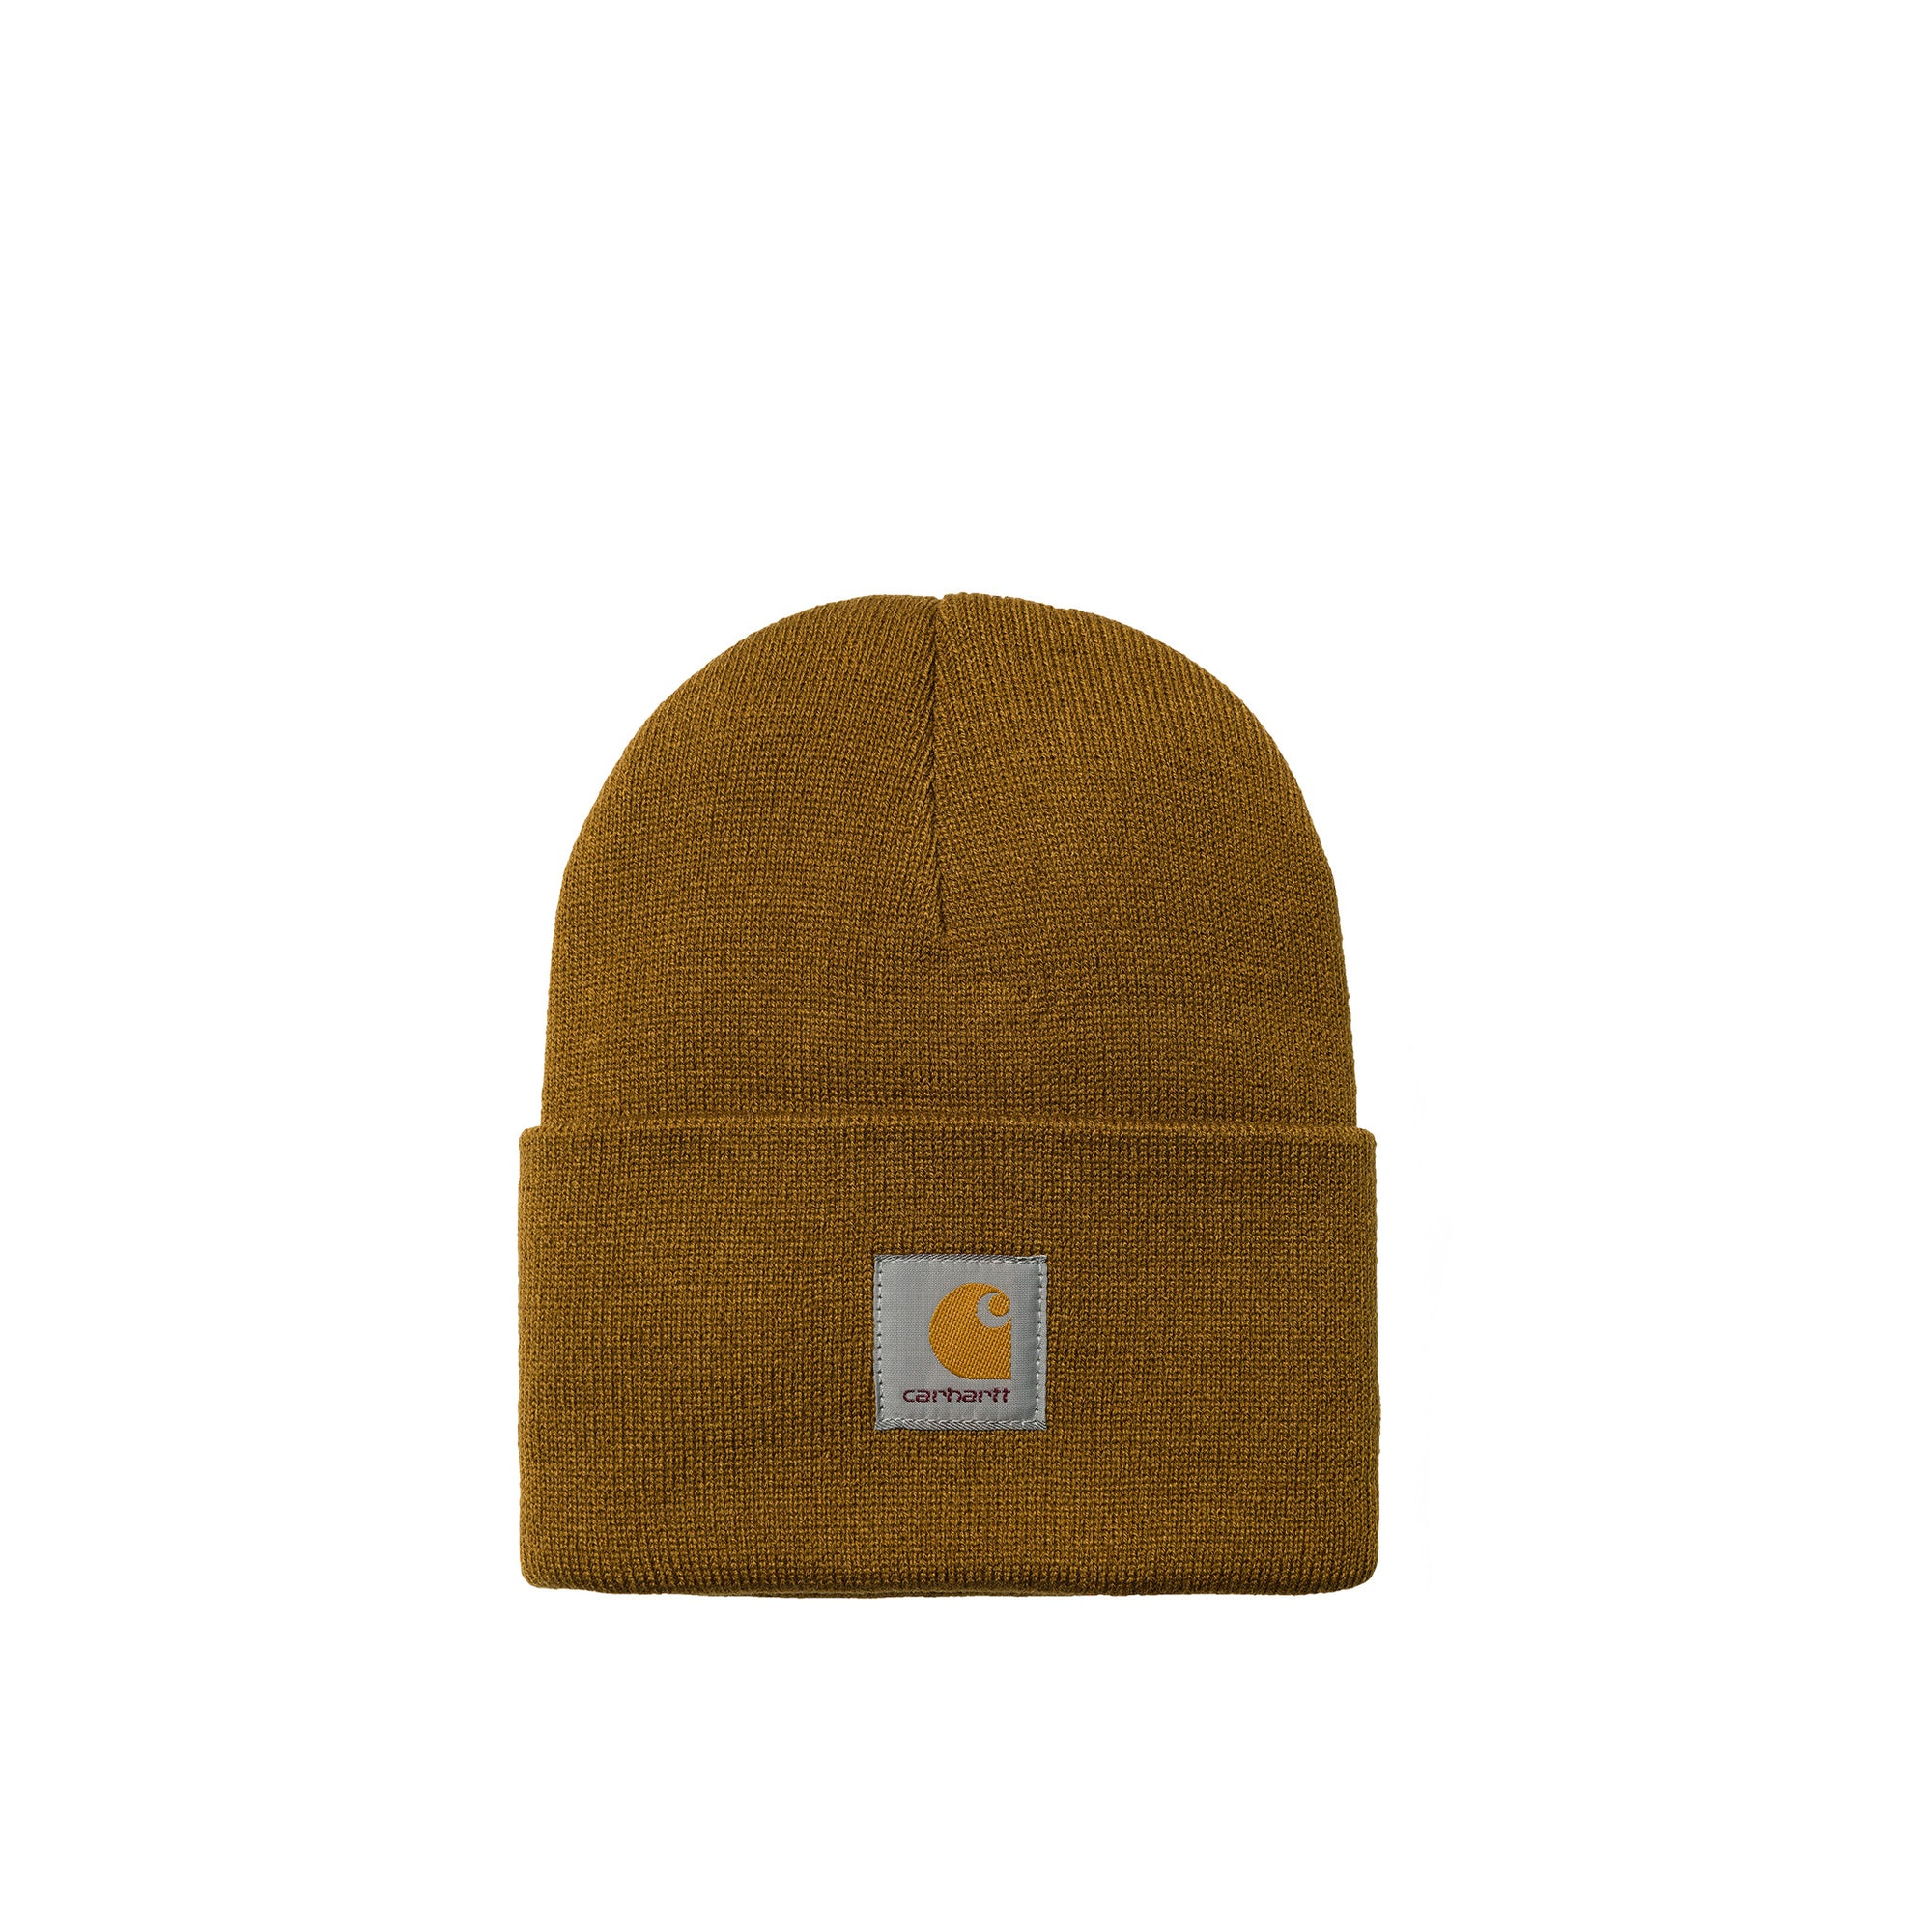 Carhartt WIP Acrylic Watch Hat: Hamilton Brown - The Union Project